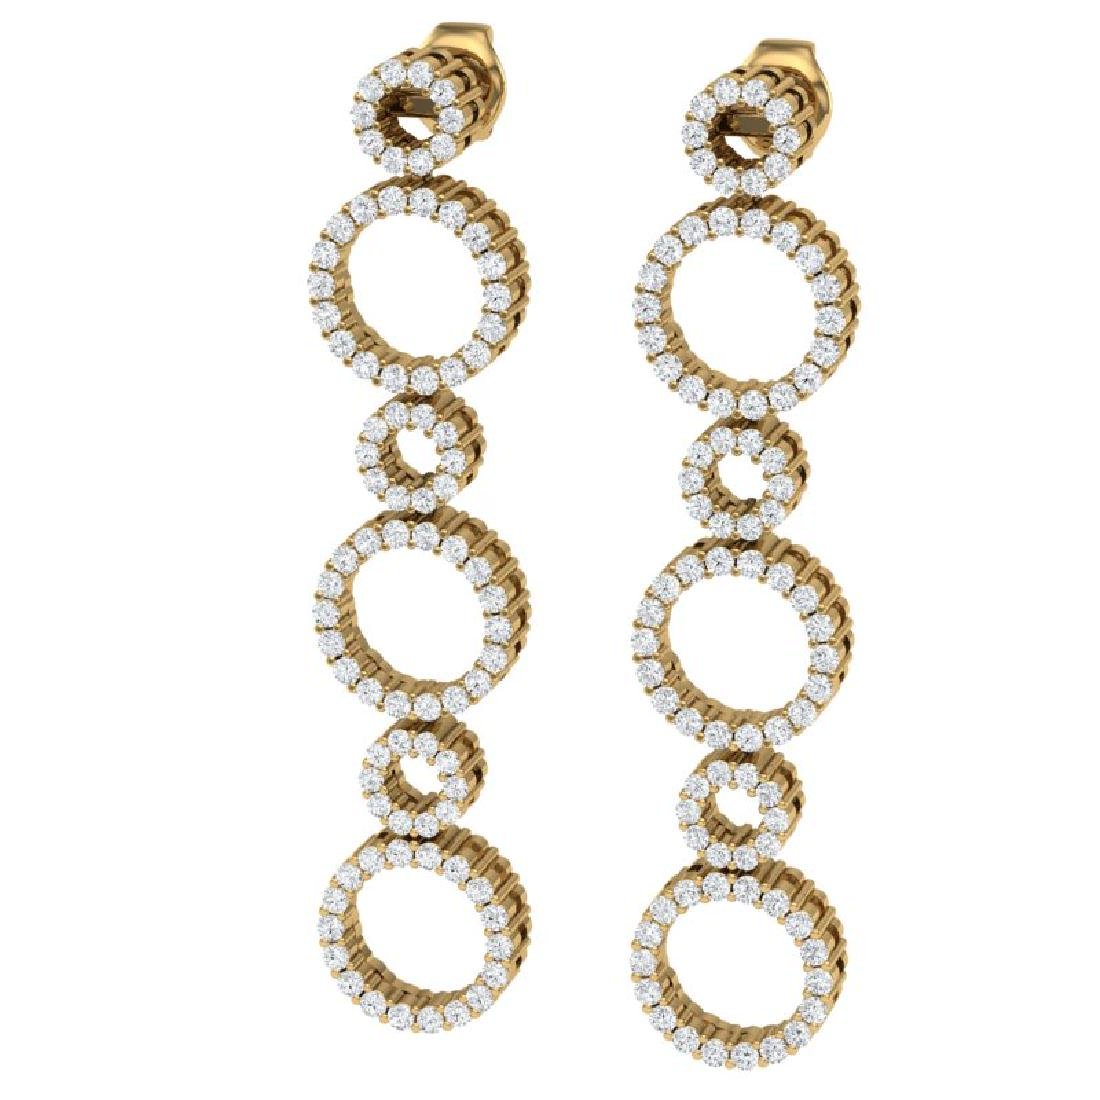 1.50 CTW Certified SI/I Diamond Halo Earrings 18K - 2